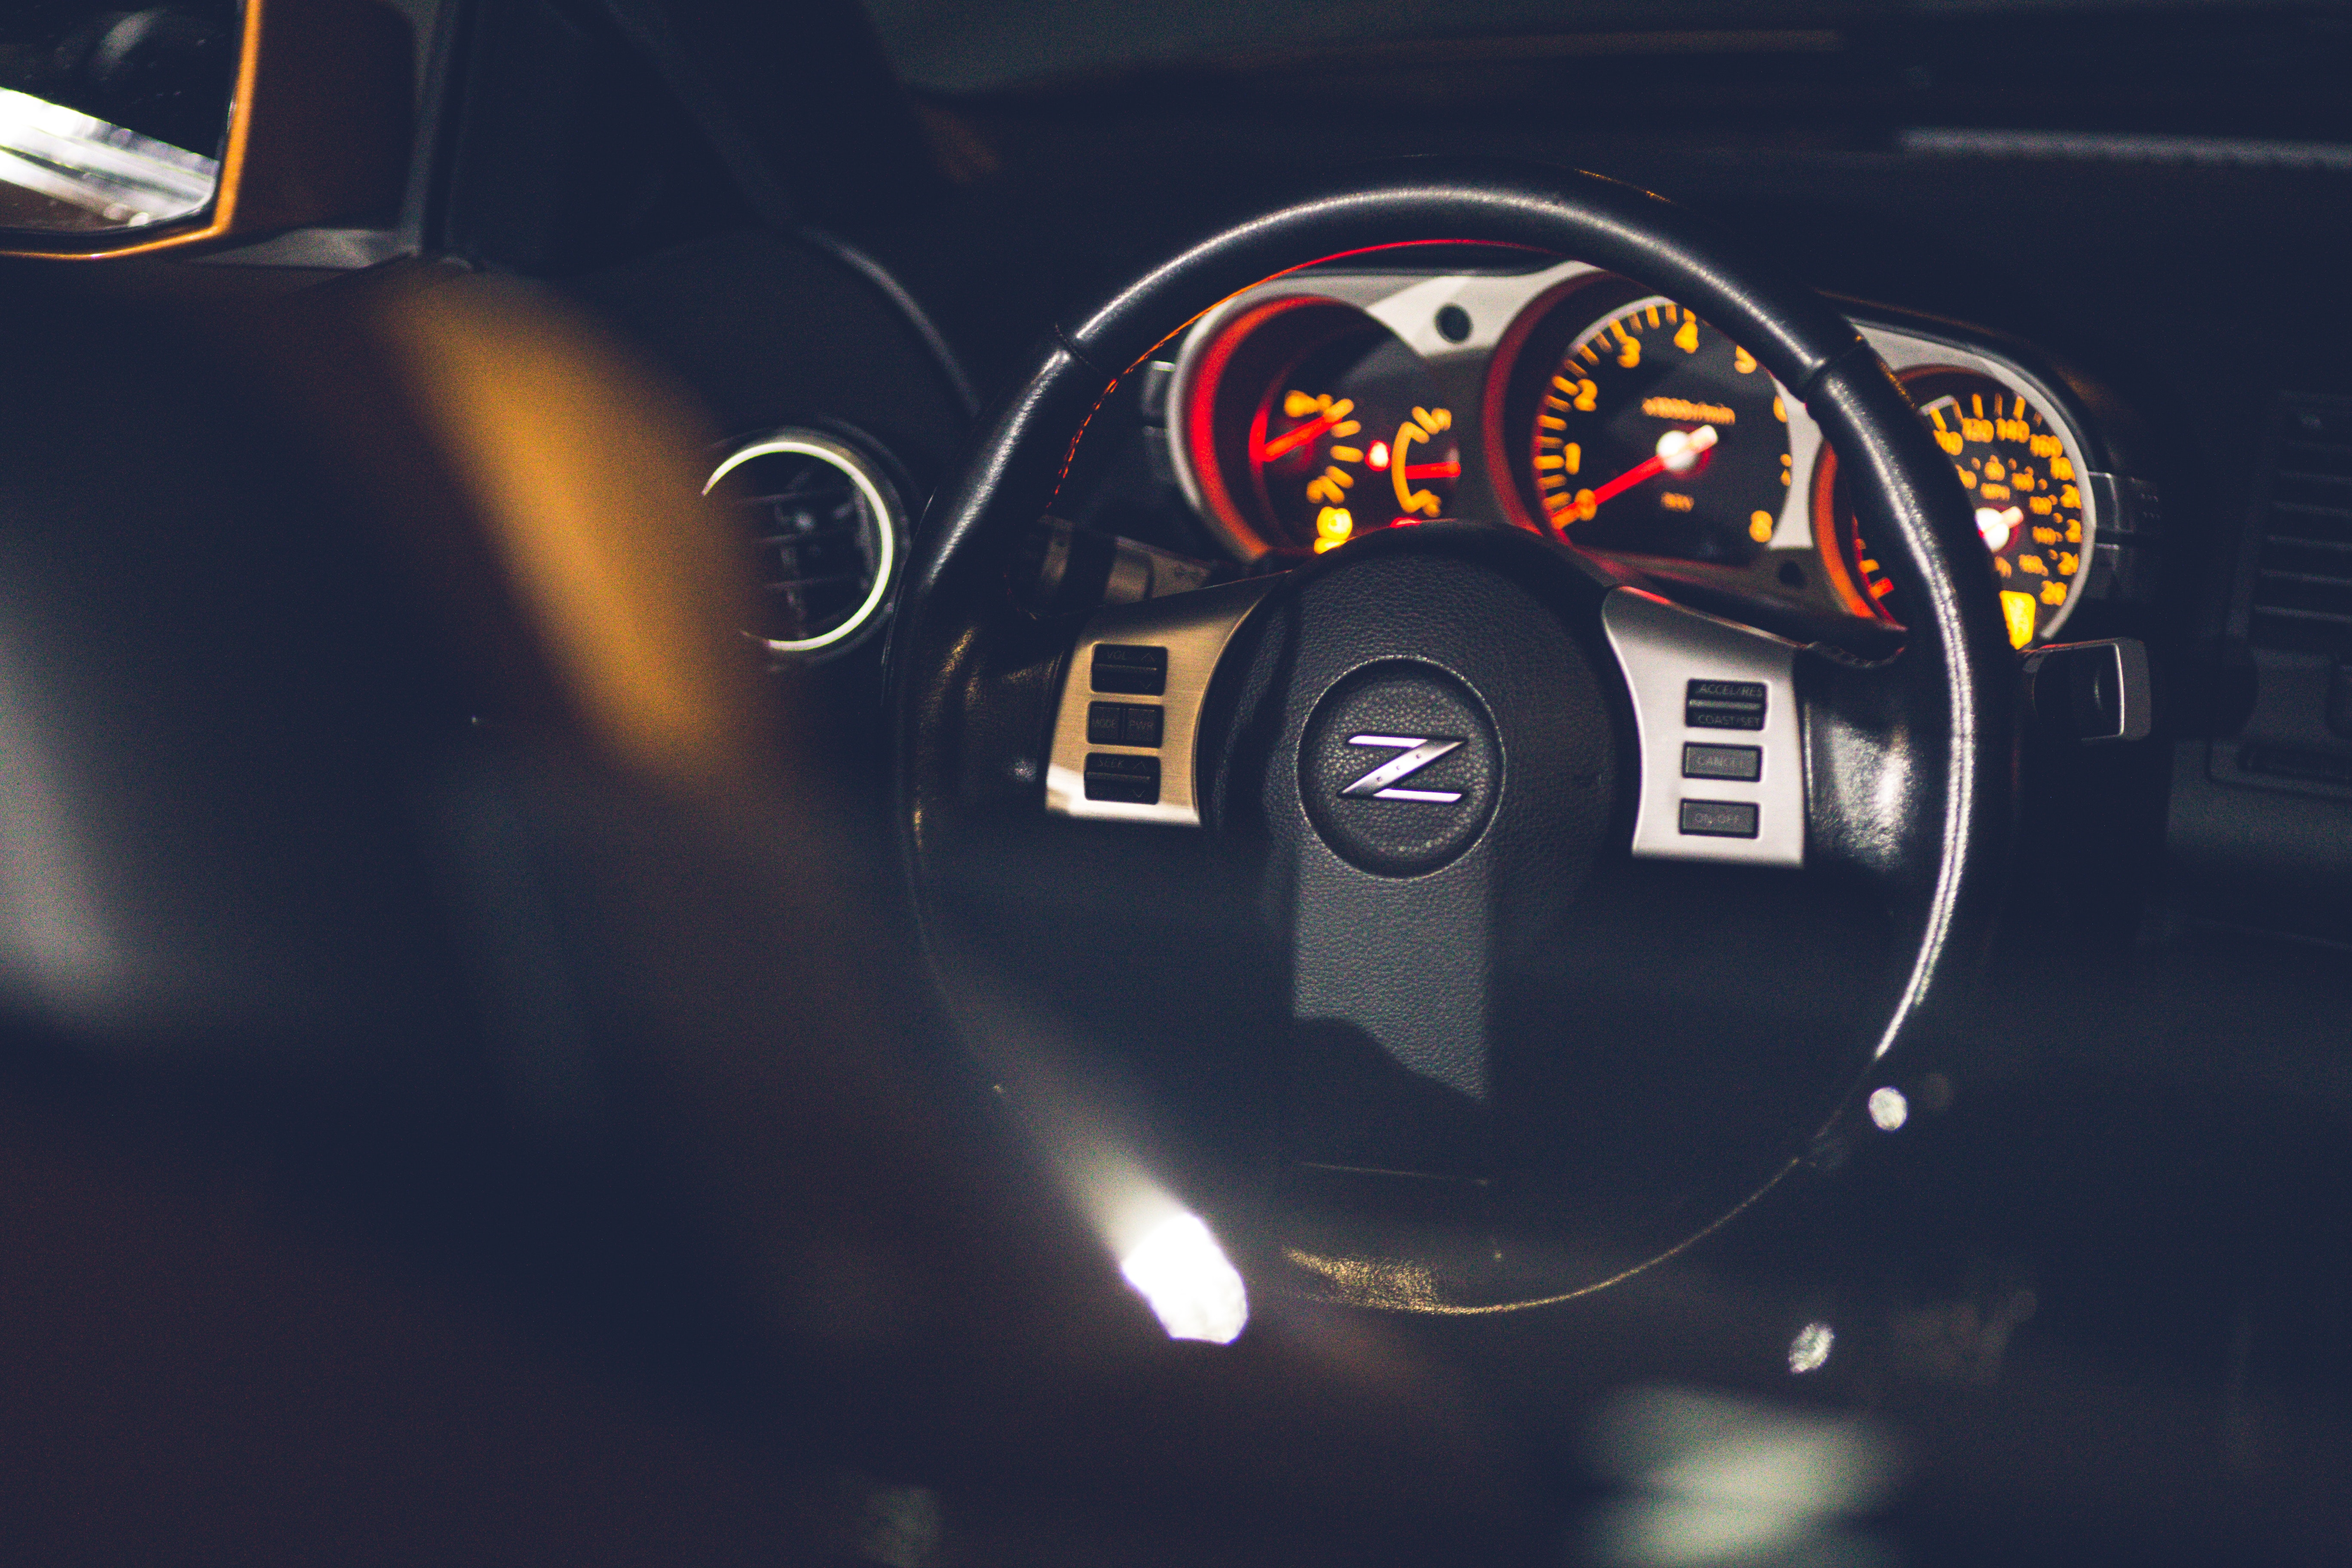 Steering Wheel And Dashboard In Modern Car At Night Free Stock Photo